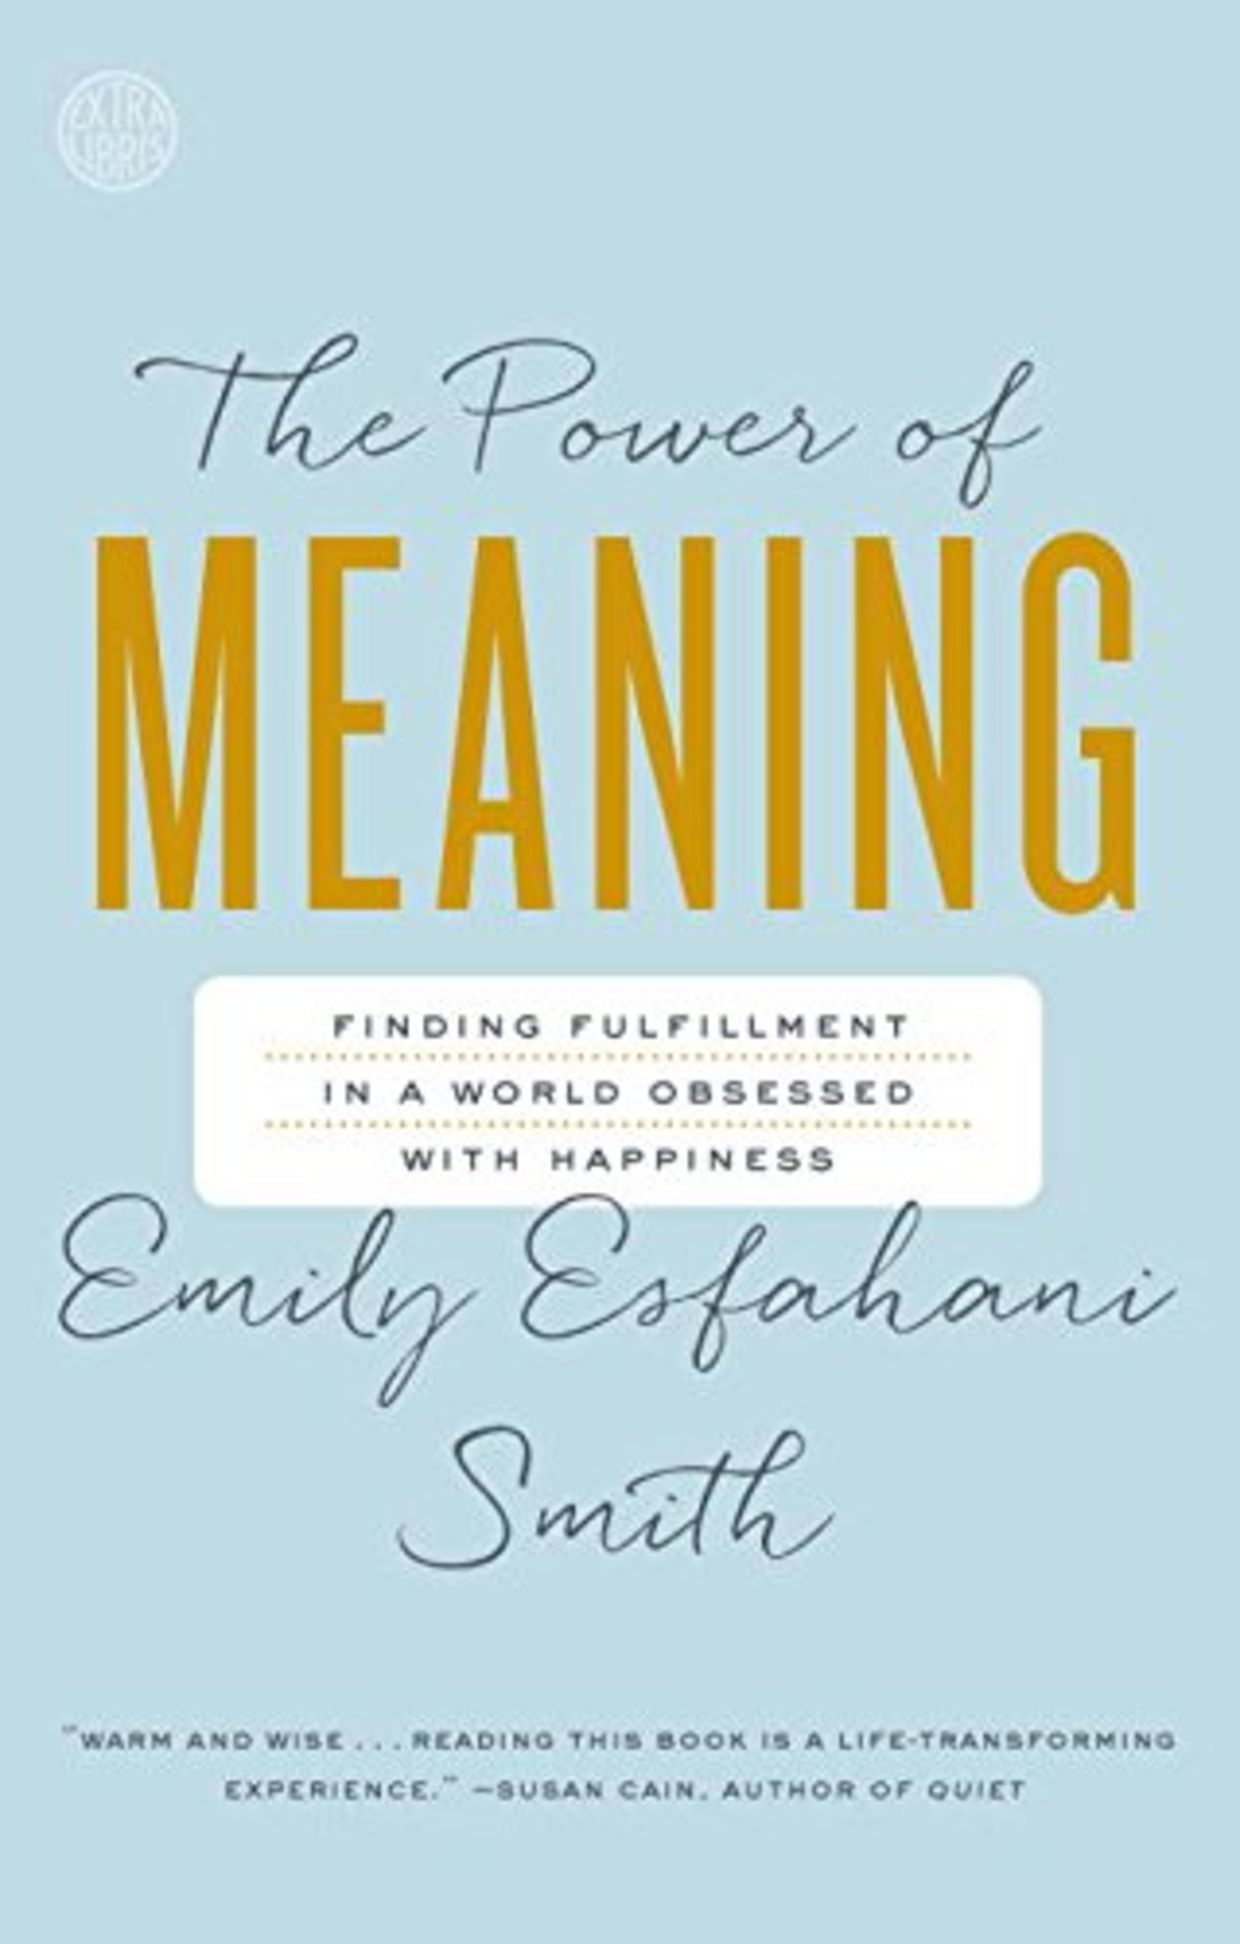 The Power of Meaning: Finding Fulfillment in a World Obsessed with Happiness, by Emily Esfahani Smith